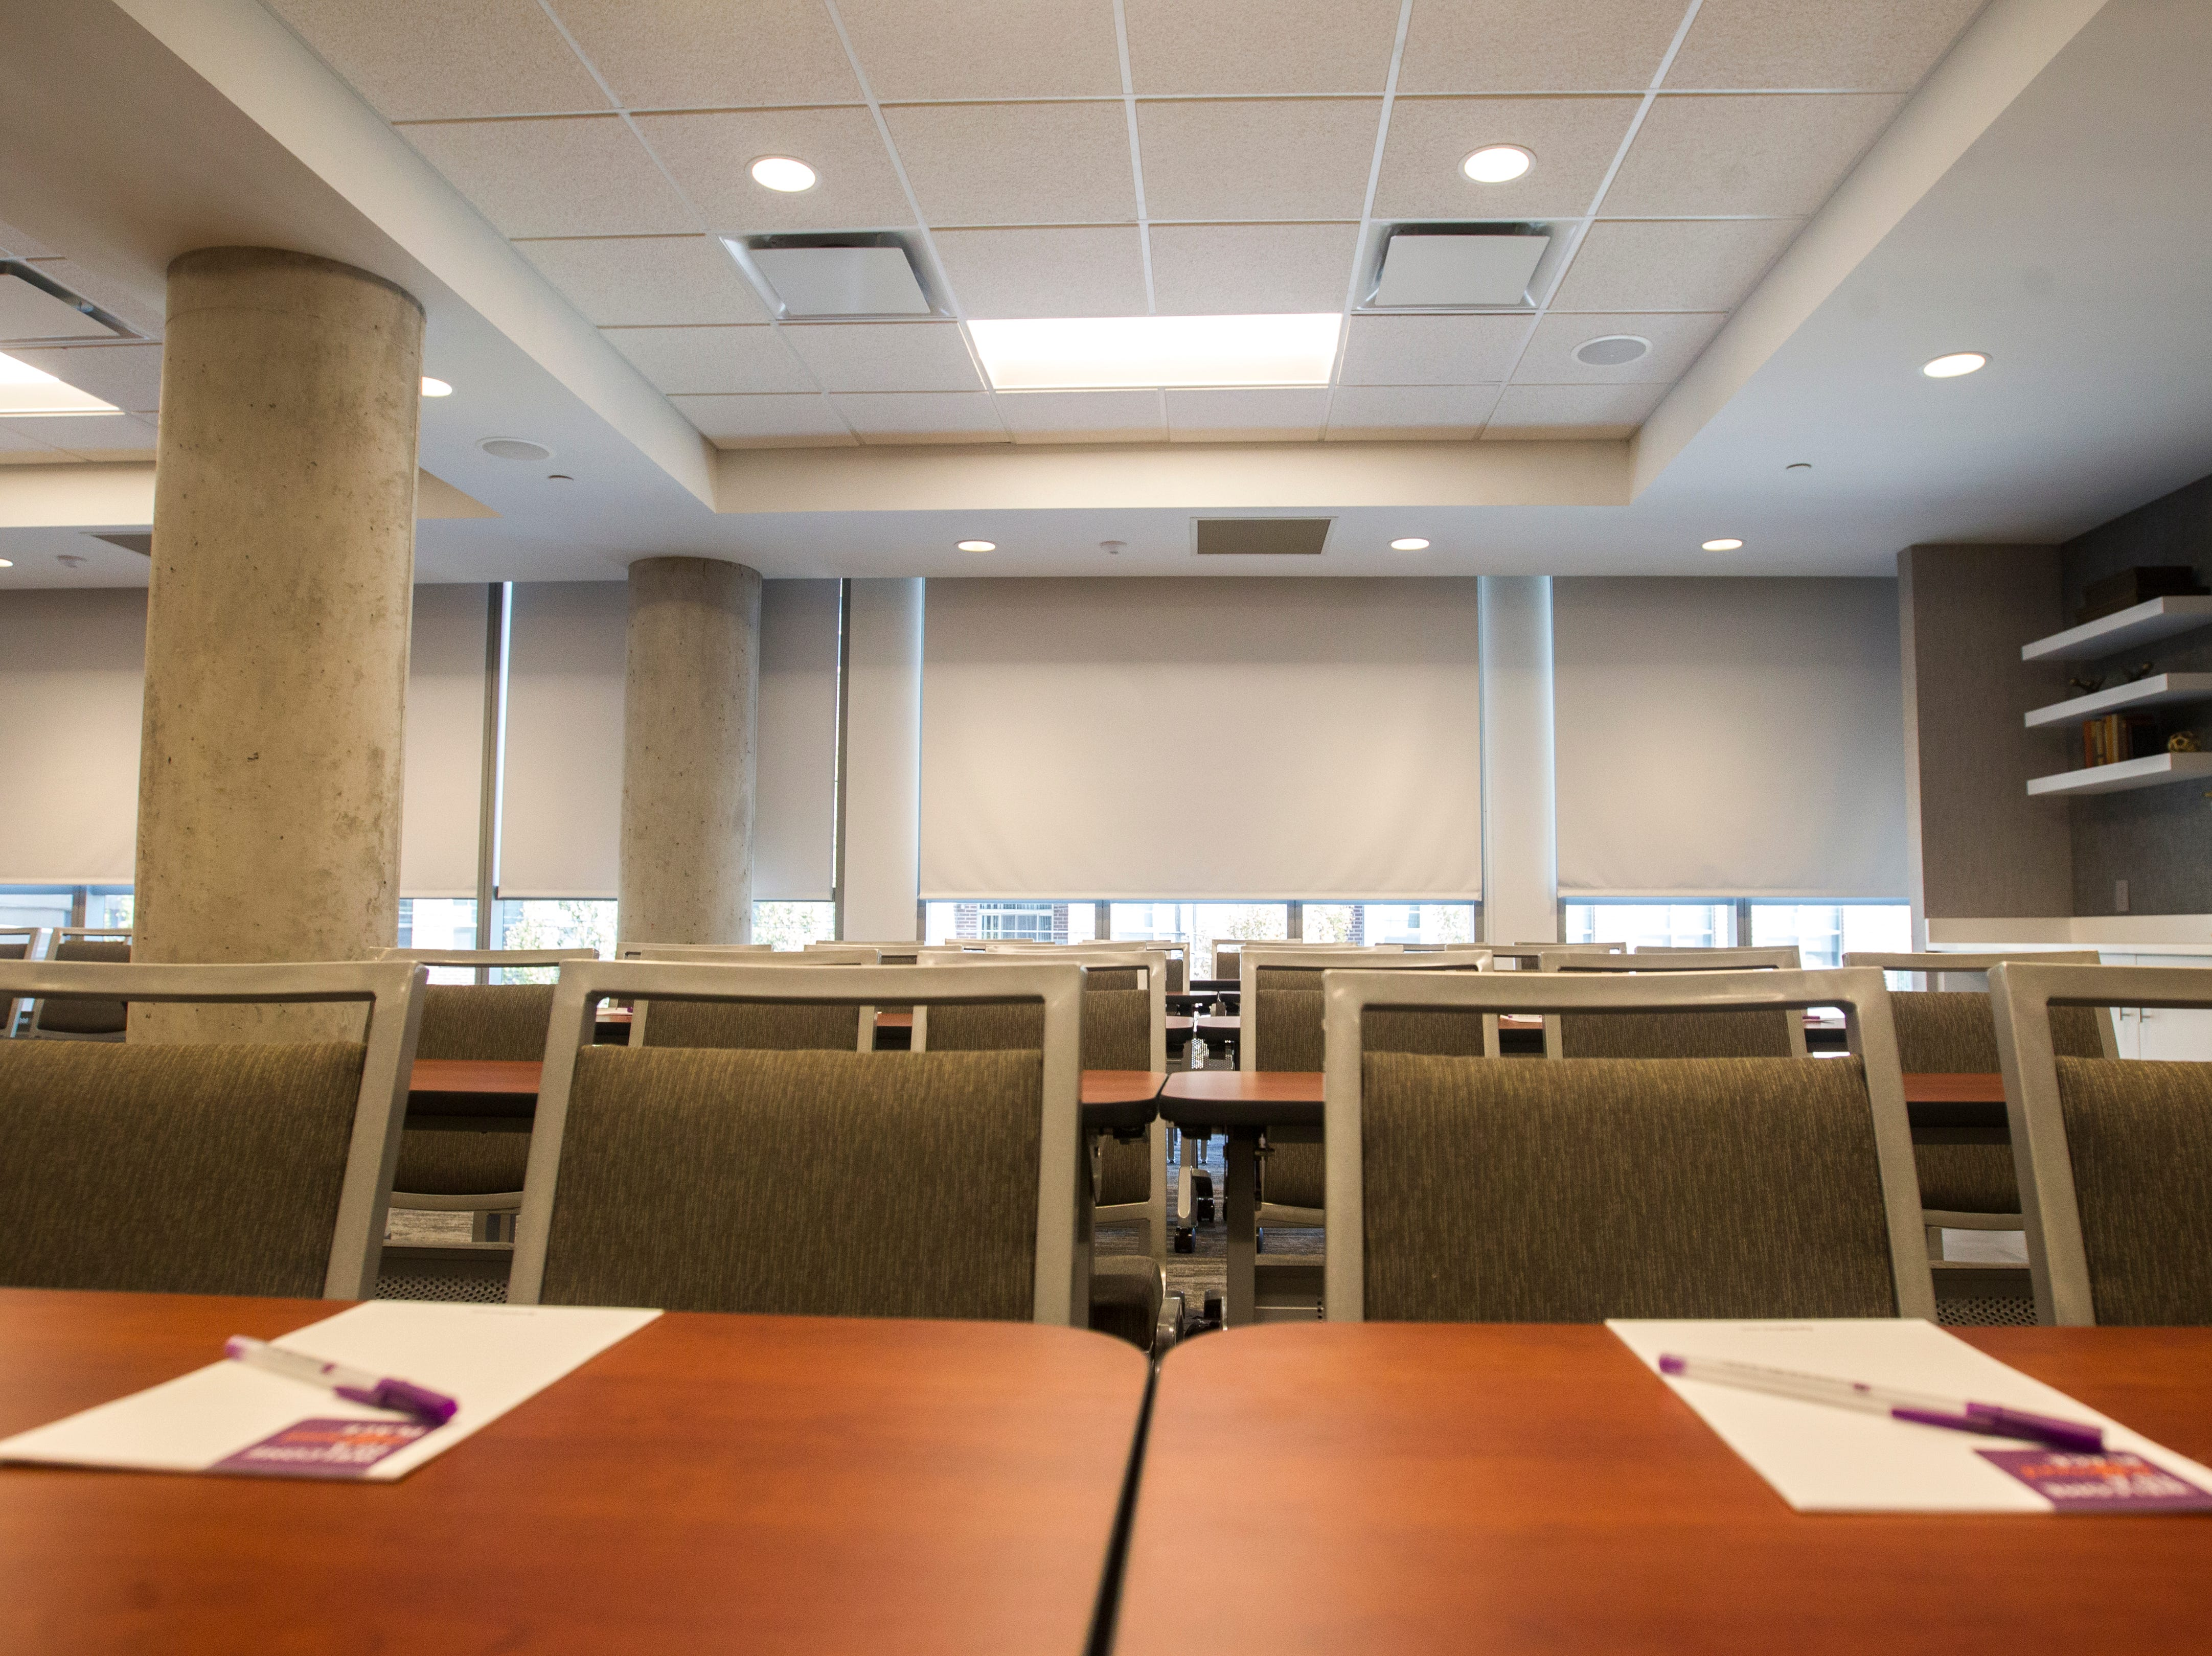 A conference room is seen on the second floor during a tour on Tuesday, Sept. 4, 2018, at Hyatt Place on the corner of Court and Linn Streets in downtown Iowa City.